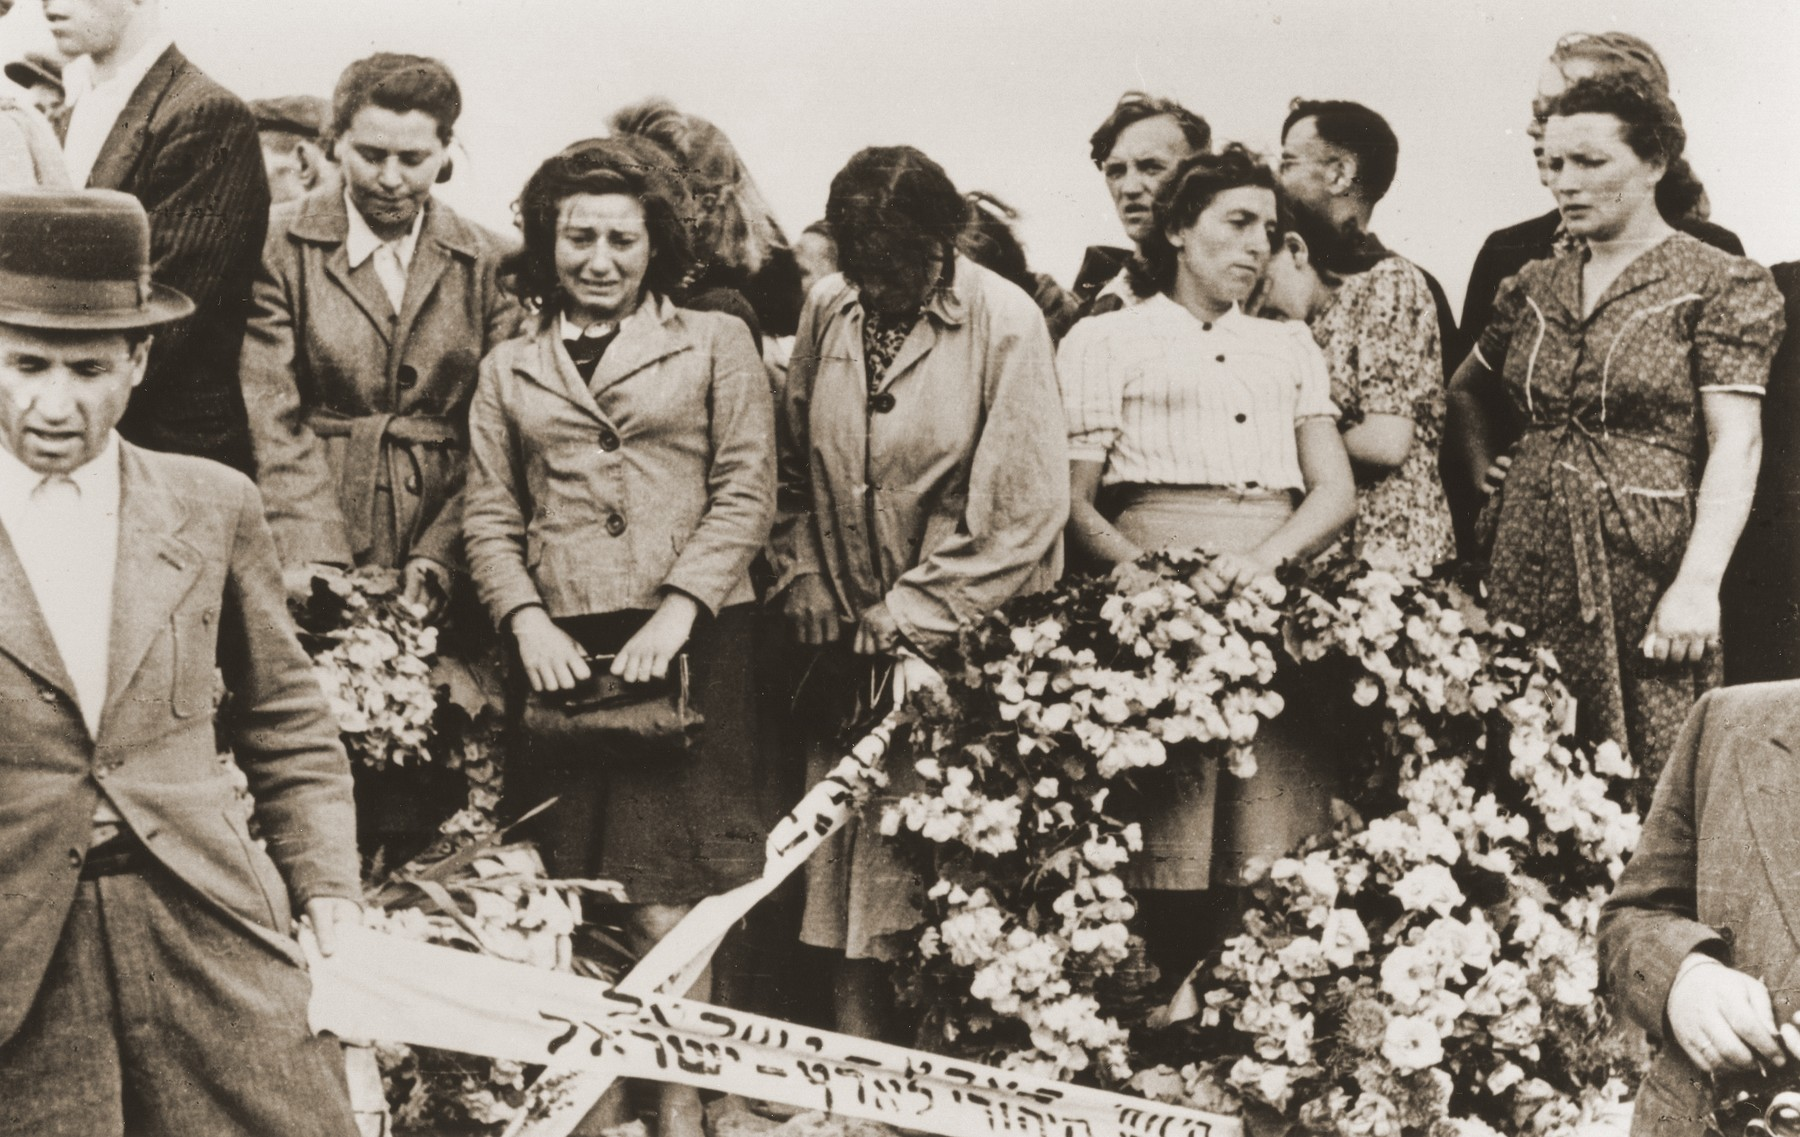 Mourners bearing wreaths and banners grieve at the funeral of the Kielce pogrom victims.